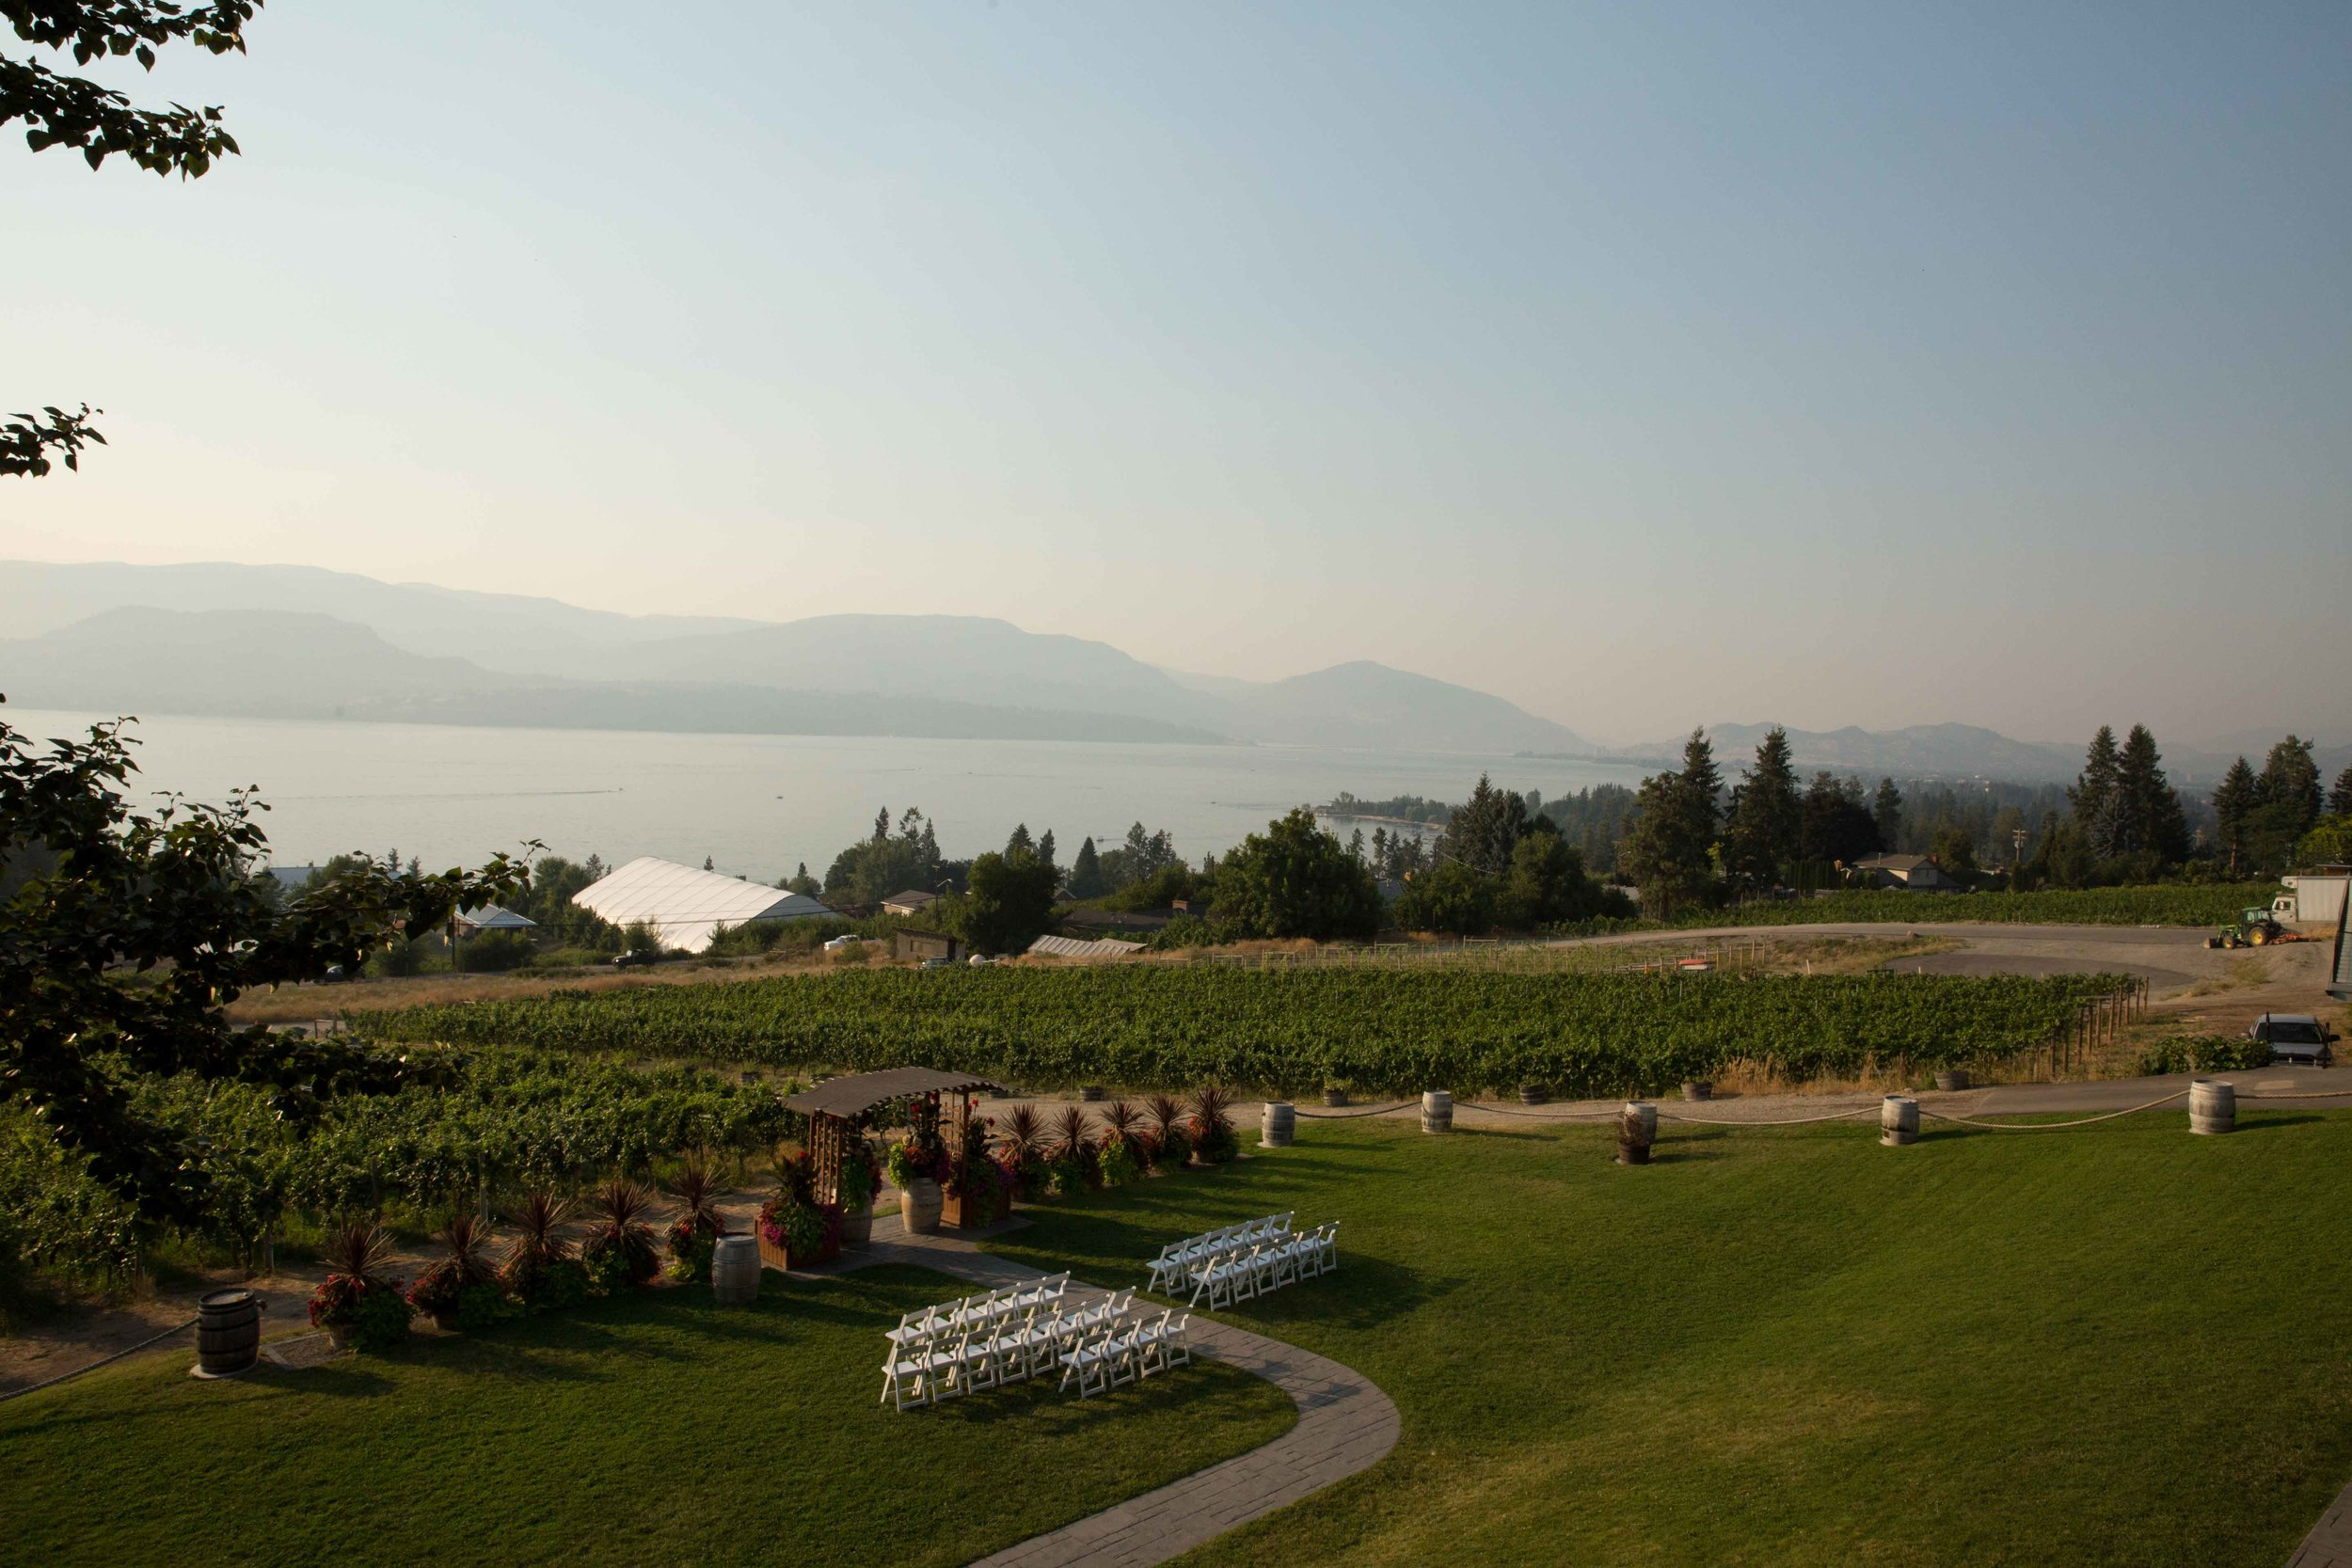 Summerhill wedding reception in Kelowna British Columbia.